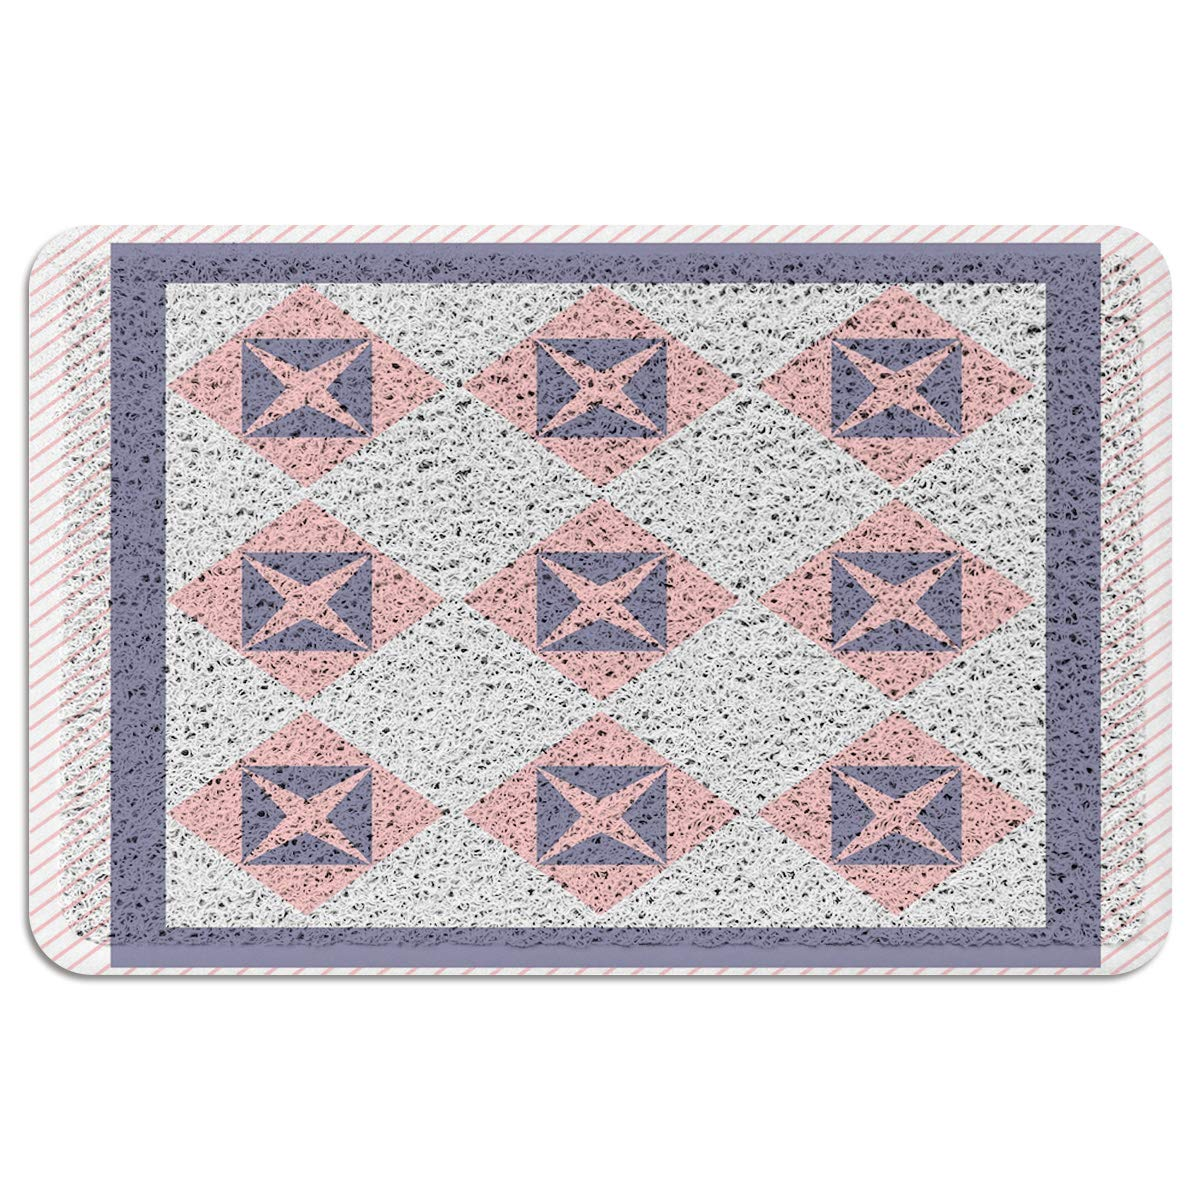 MUSEDAY Indoor/Outdoor Doormat,Modern Durable Heavy Duty Shoes Scraper Mat, Purple and Pink Geometric Star Striped Easy Clean Rug for Pet Bowl(24''x35'',W x L)